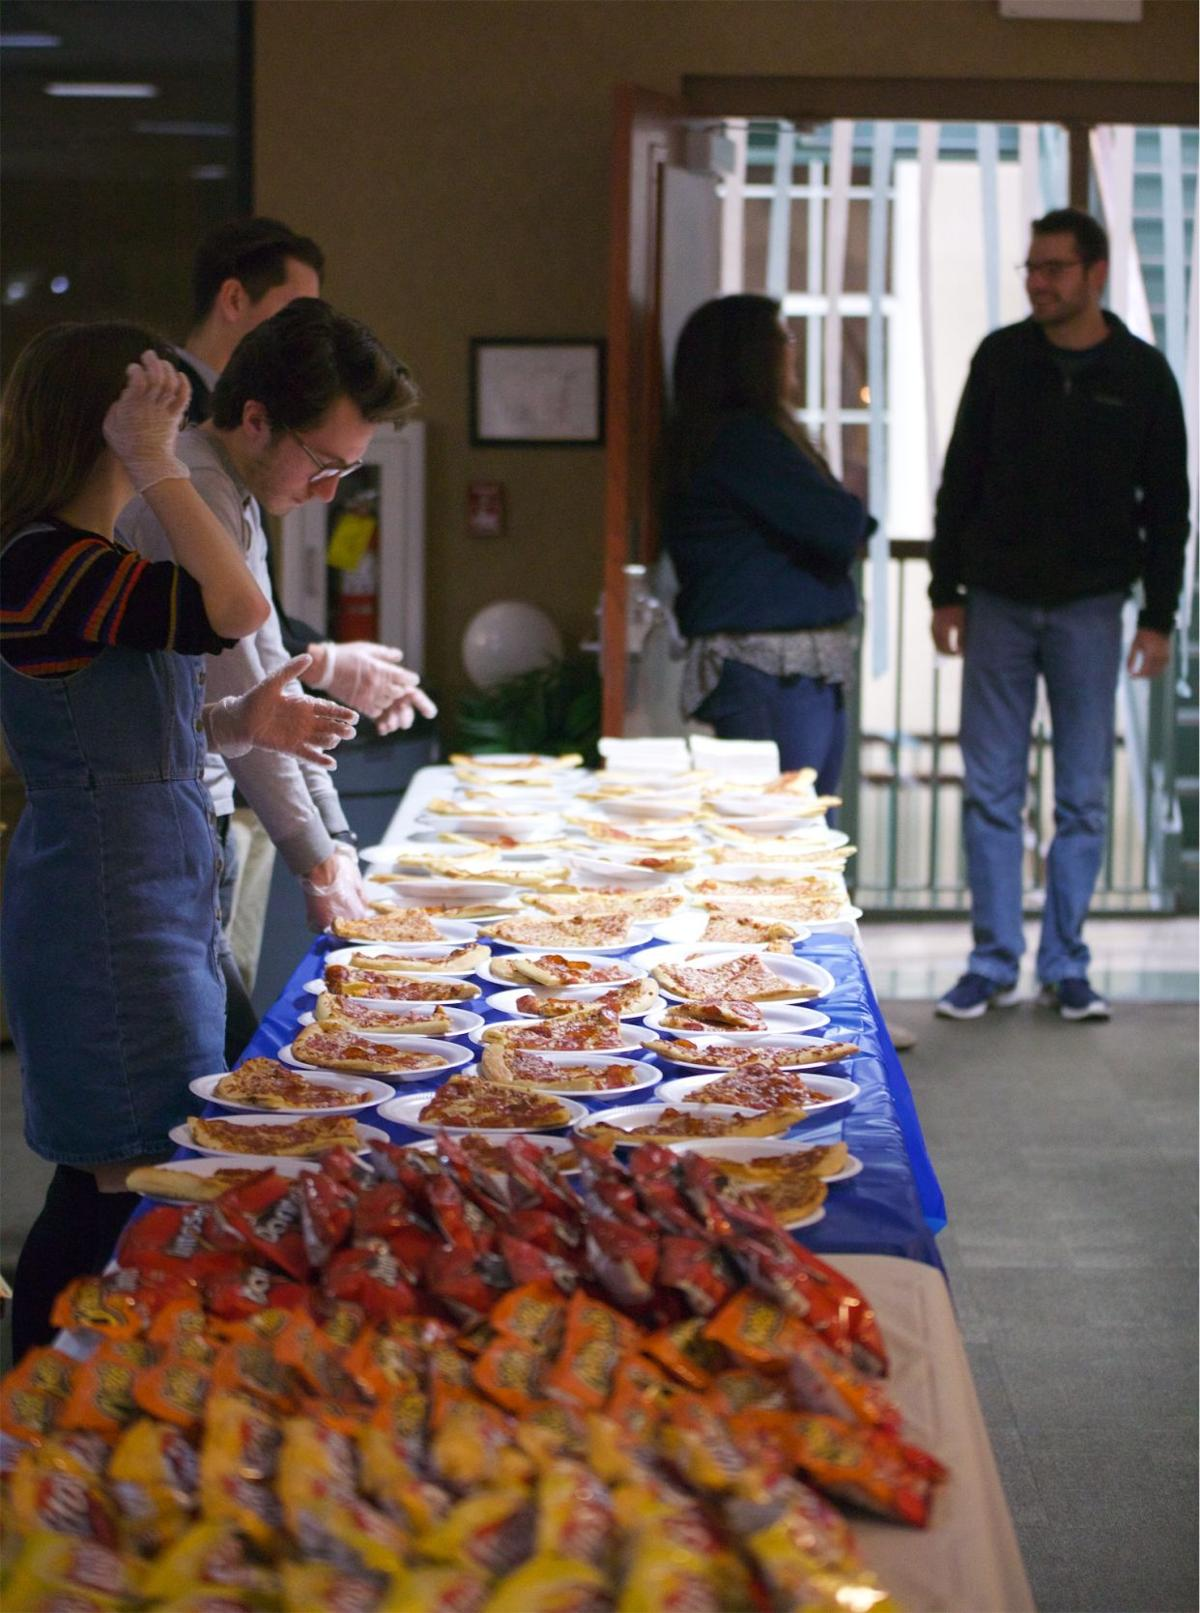 After the first night of Convocation, a mixer was put on by the Student Leadership Council. Snacks, pizza and sandwiches were served.  Photo by John David Clark